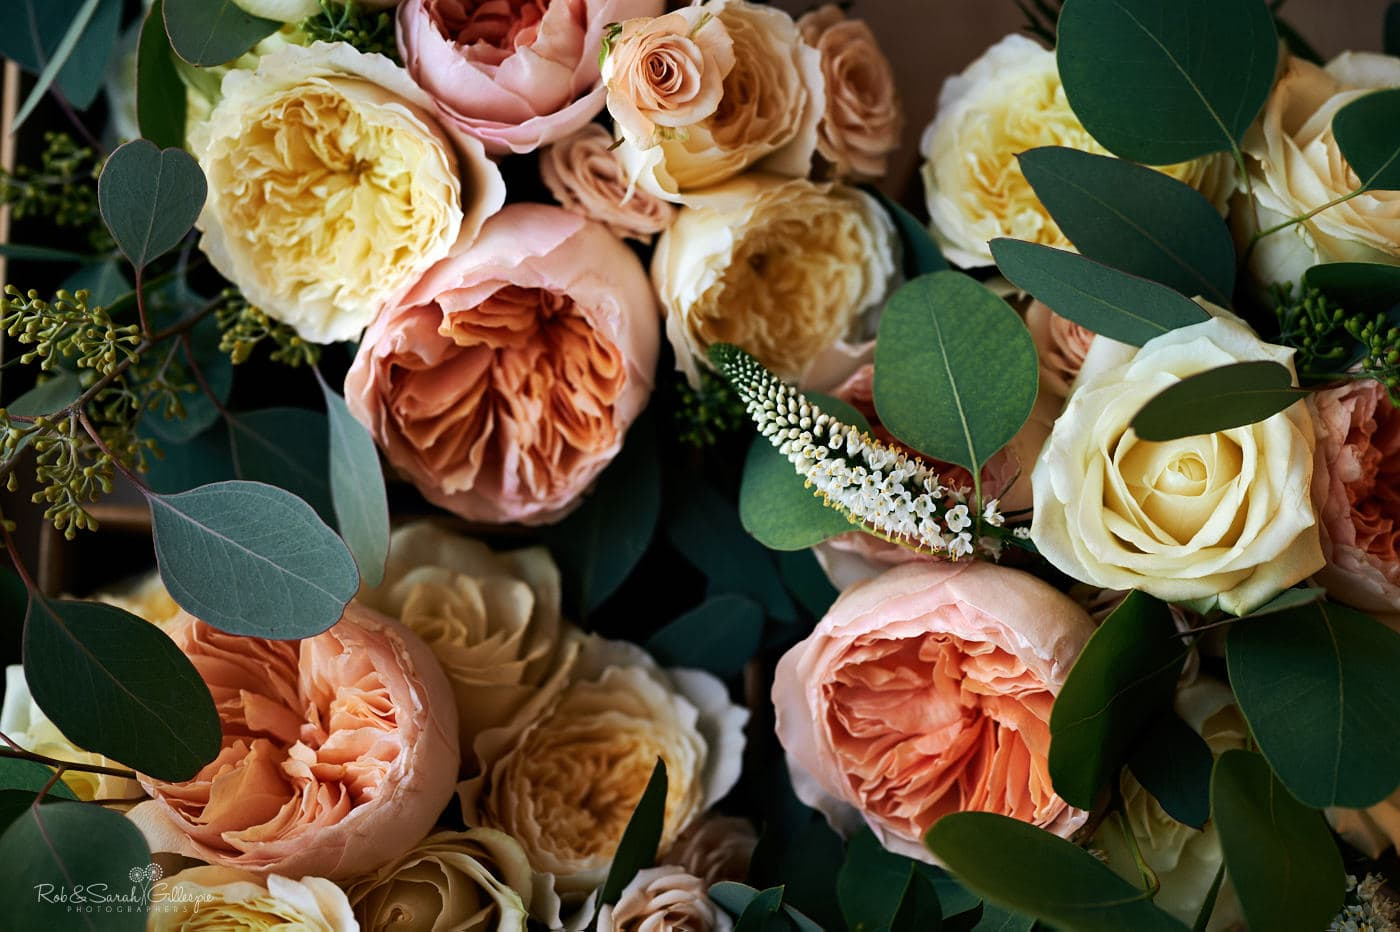 Wedding flowers in shades of yellow, peach and pink